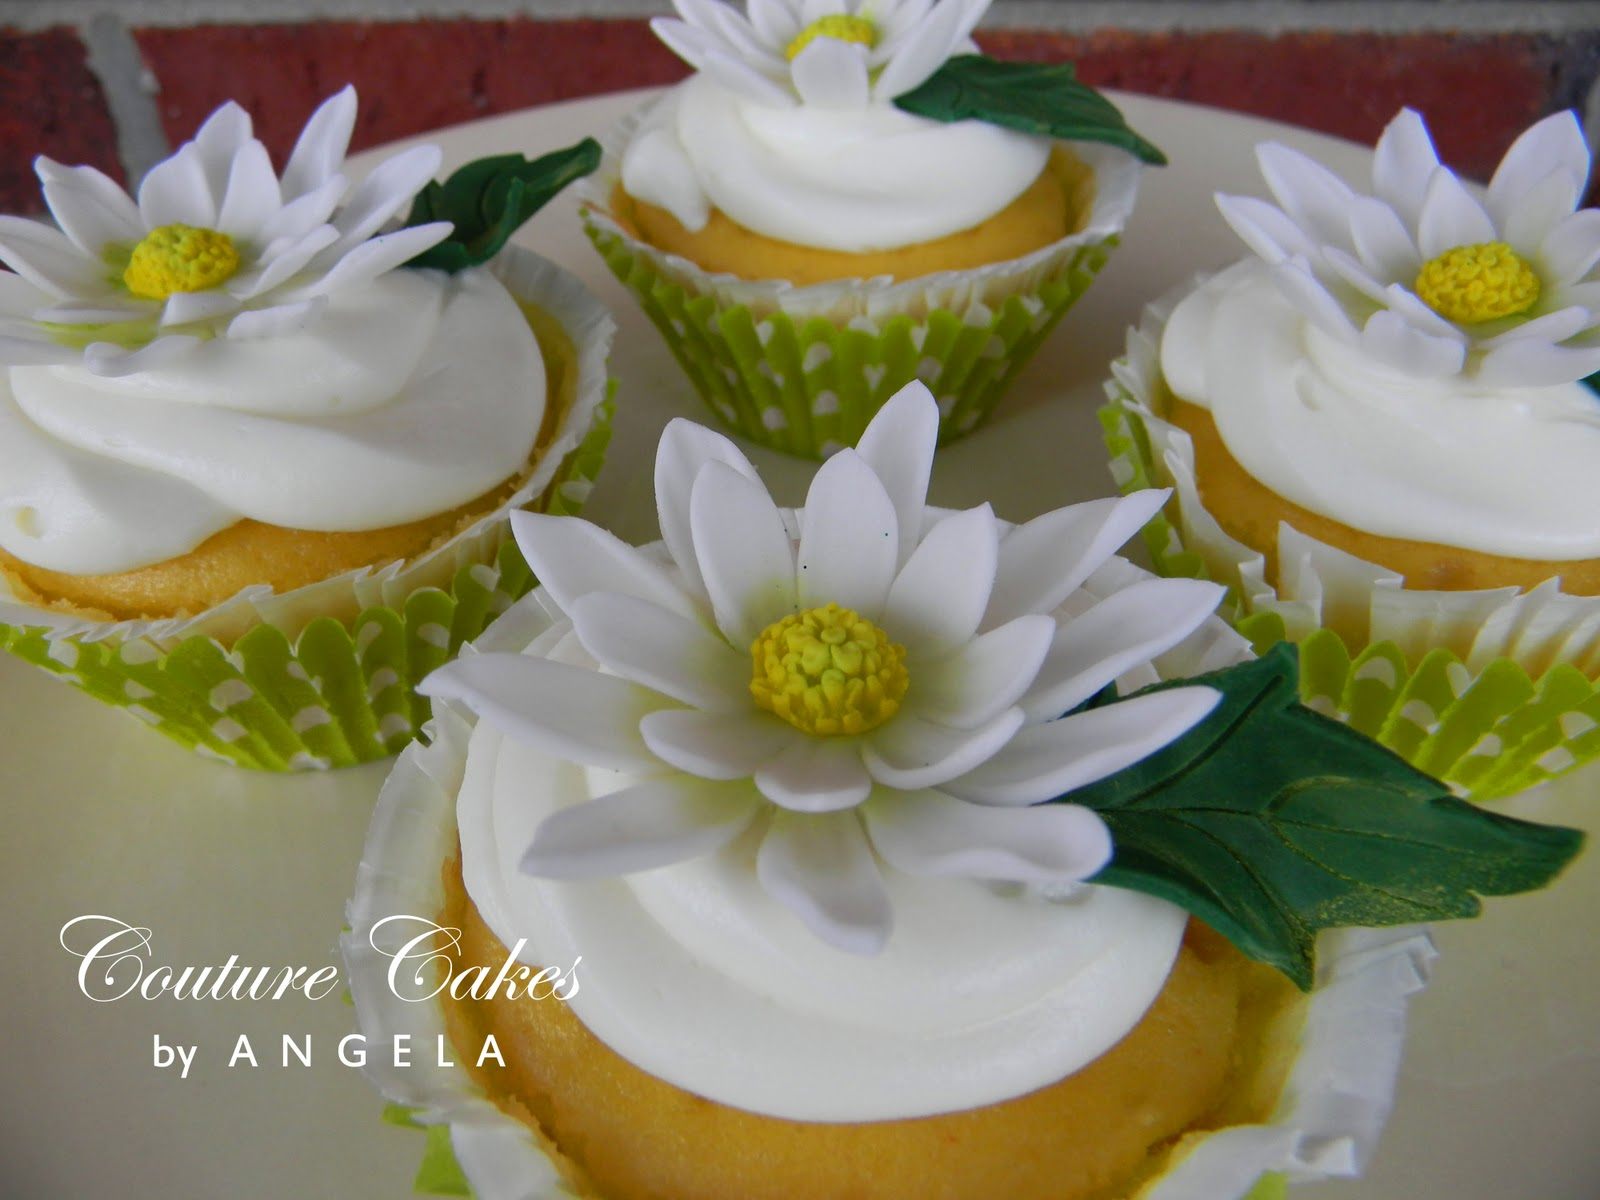 Couture Cakes by Angela Spring Daisies